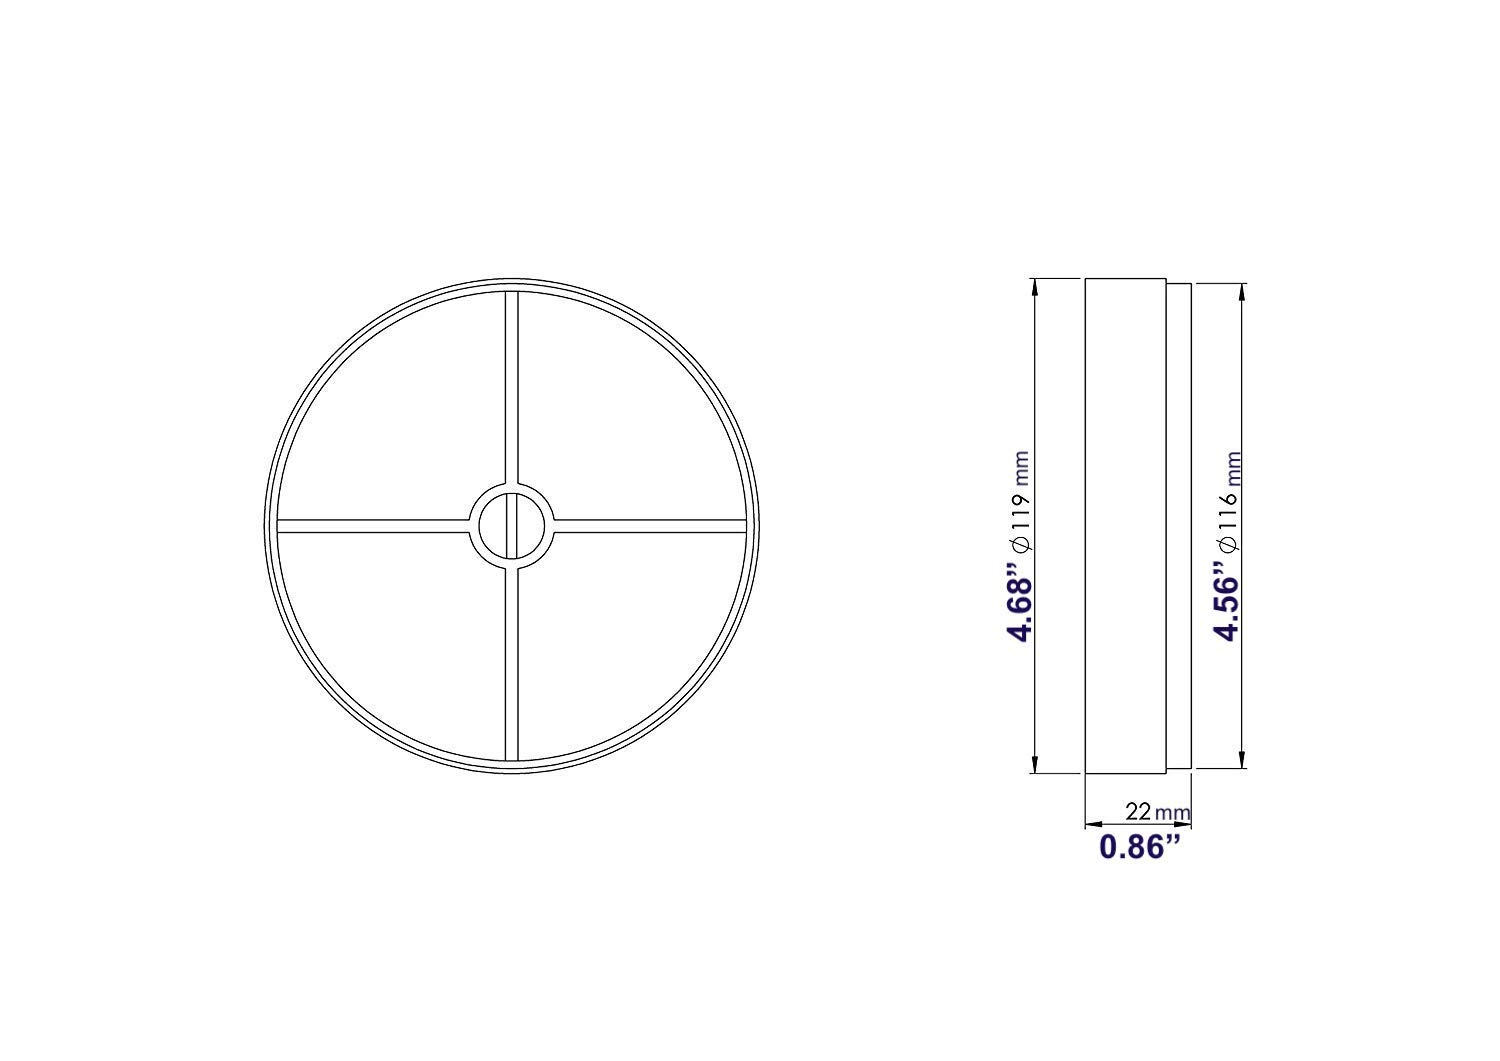 5'' Backdraft Damper Inline Spring Loaded - Insertable Vent Spring (5'' inch) // 125mm by Ozo Brothers